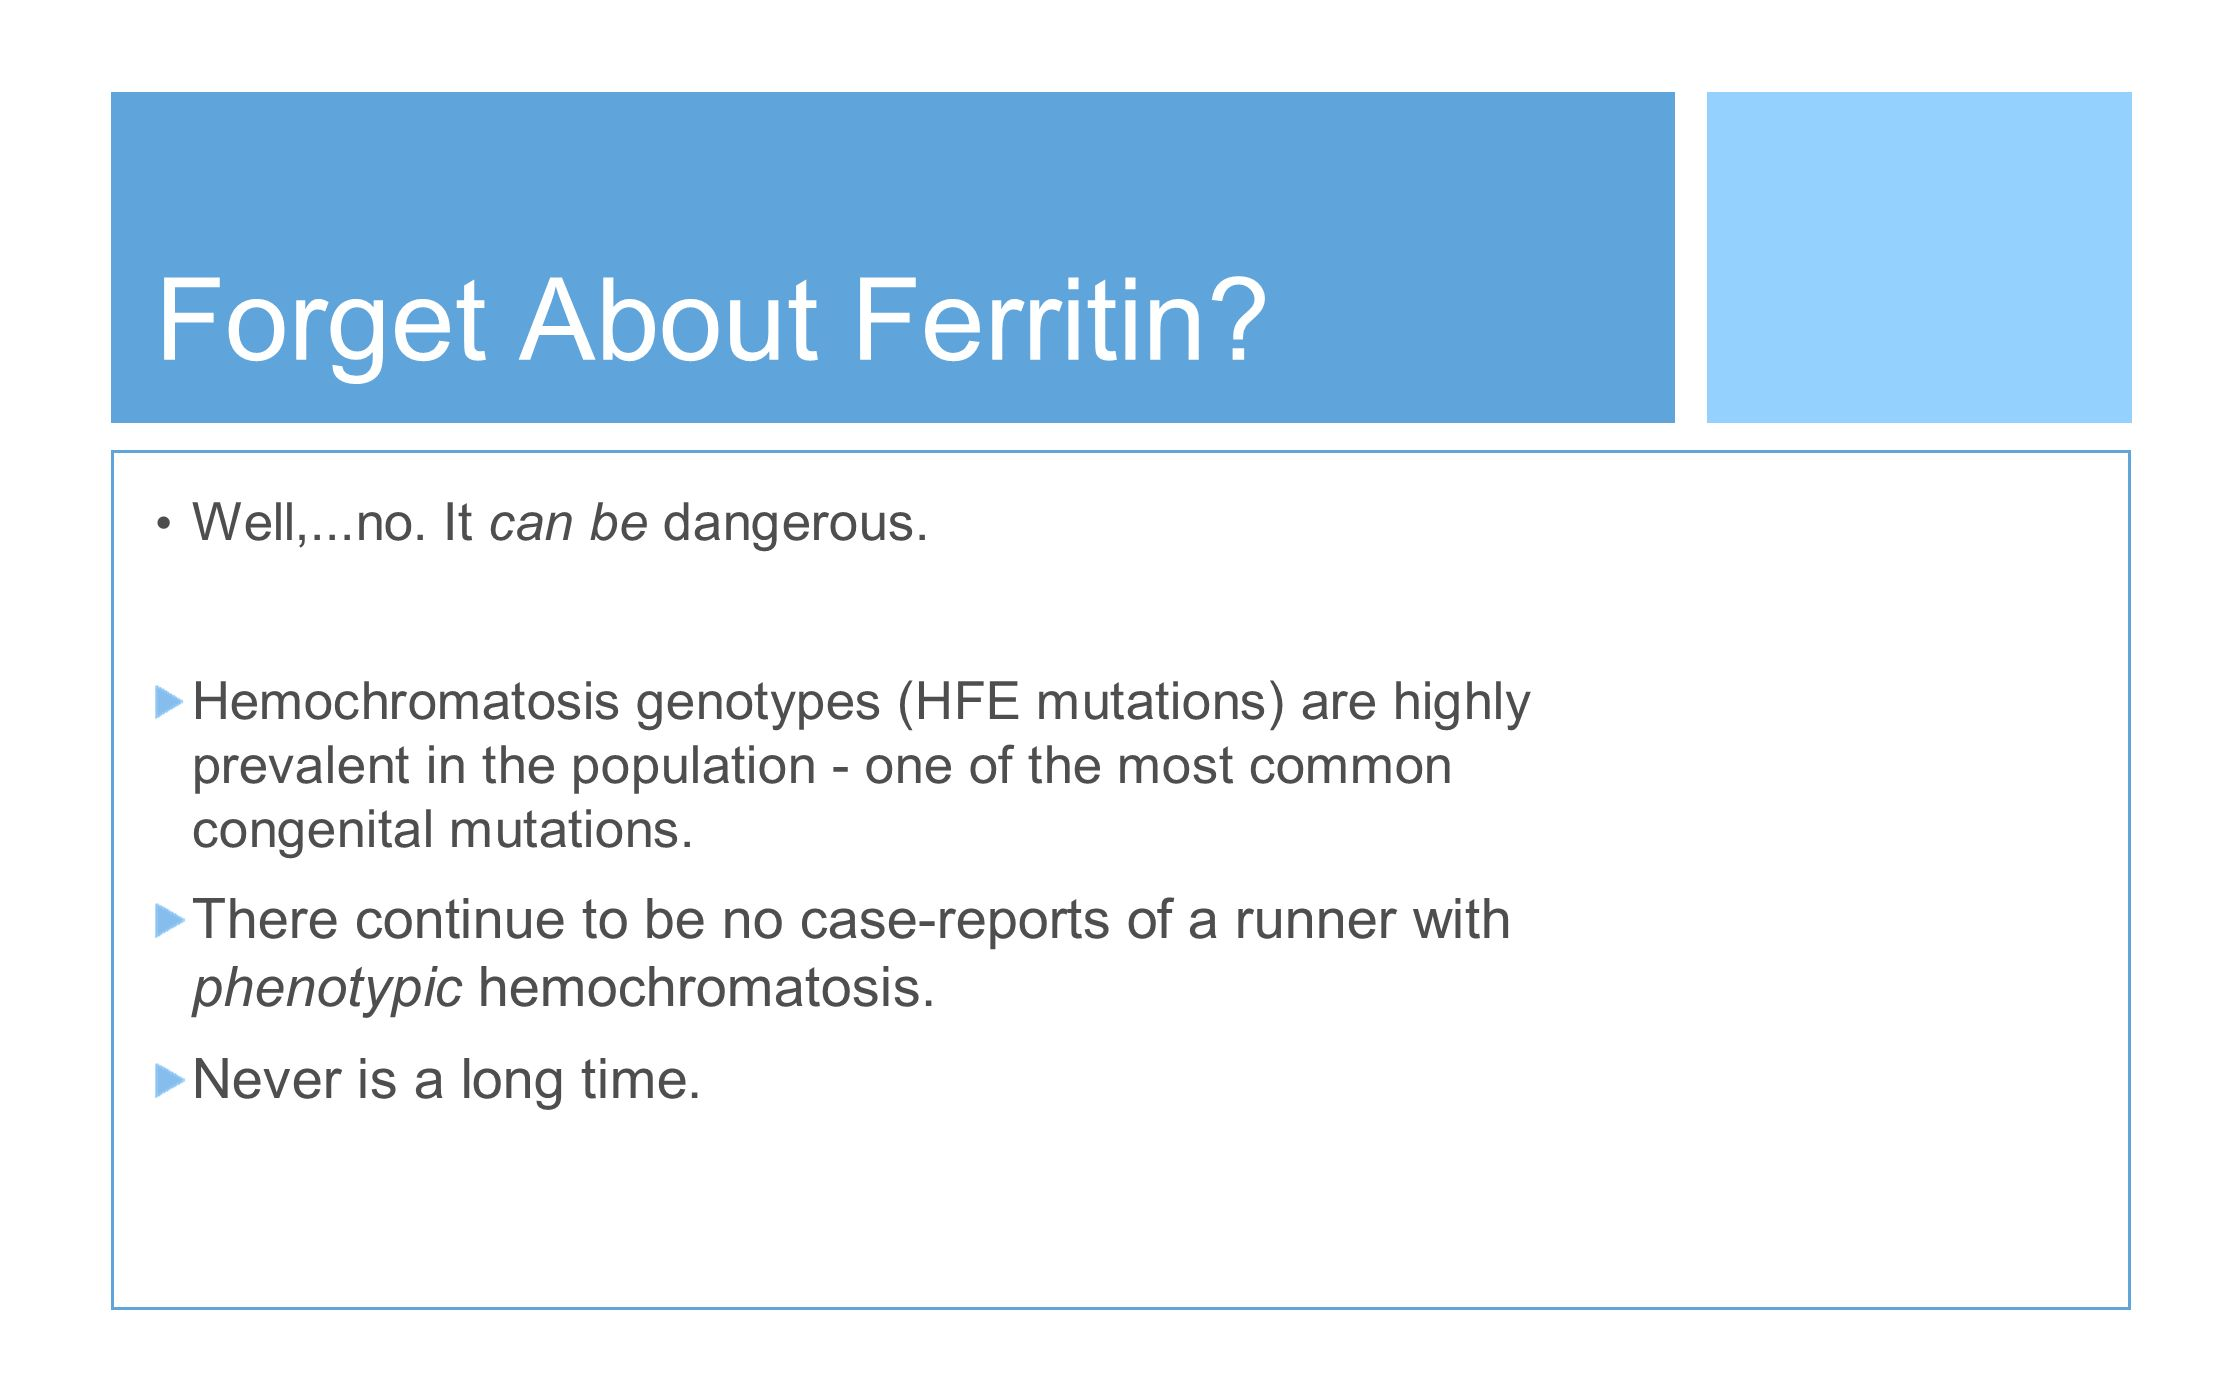 Forget About Ferritin So if ferritin is just a reactive component, maybe we should forget about it